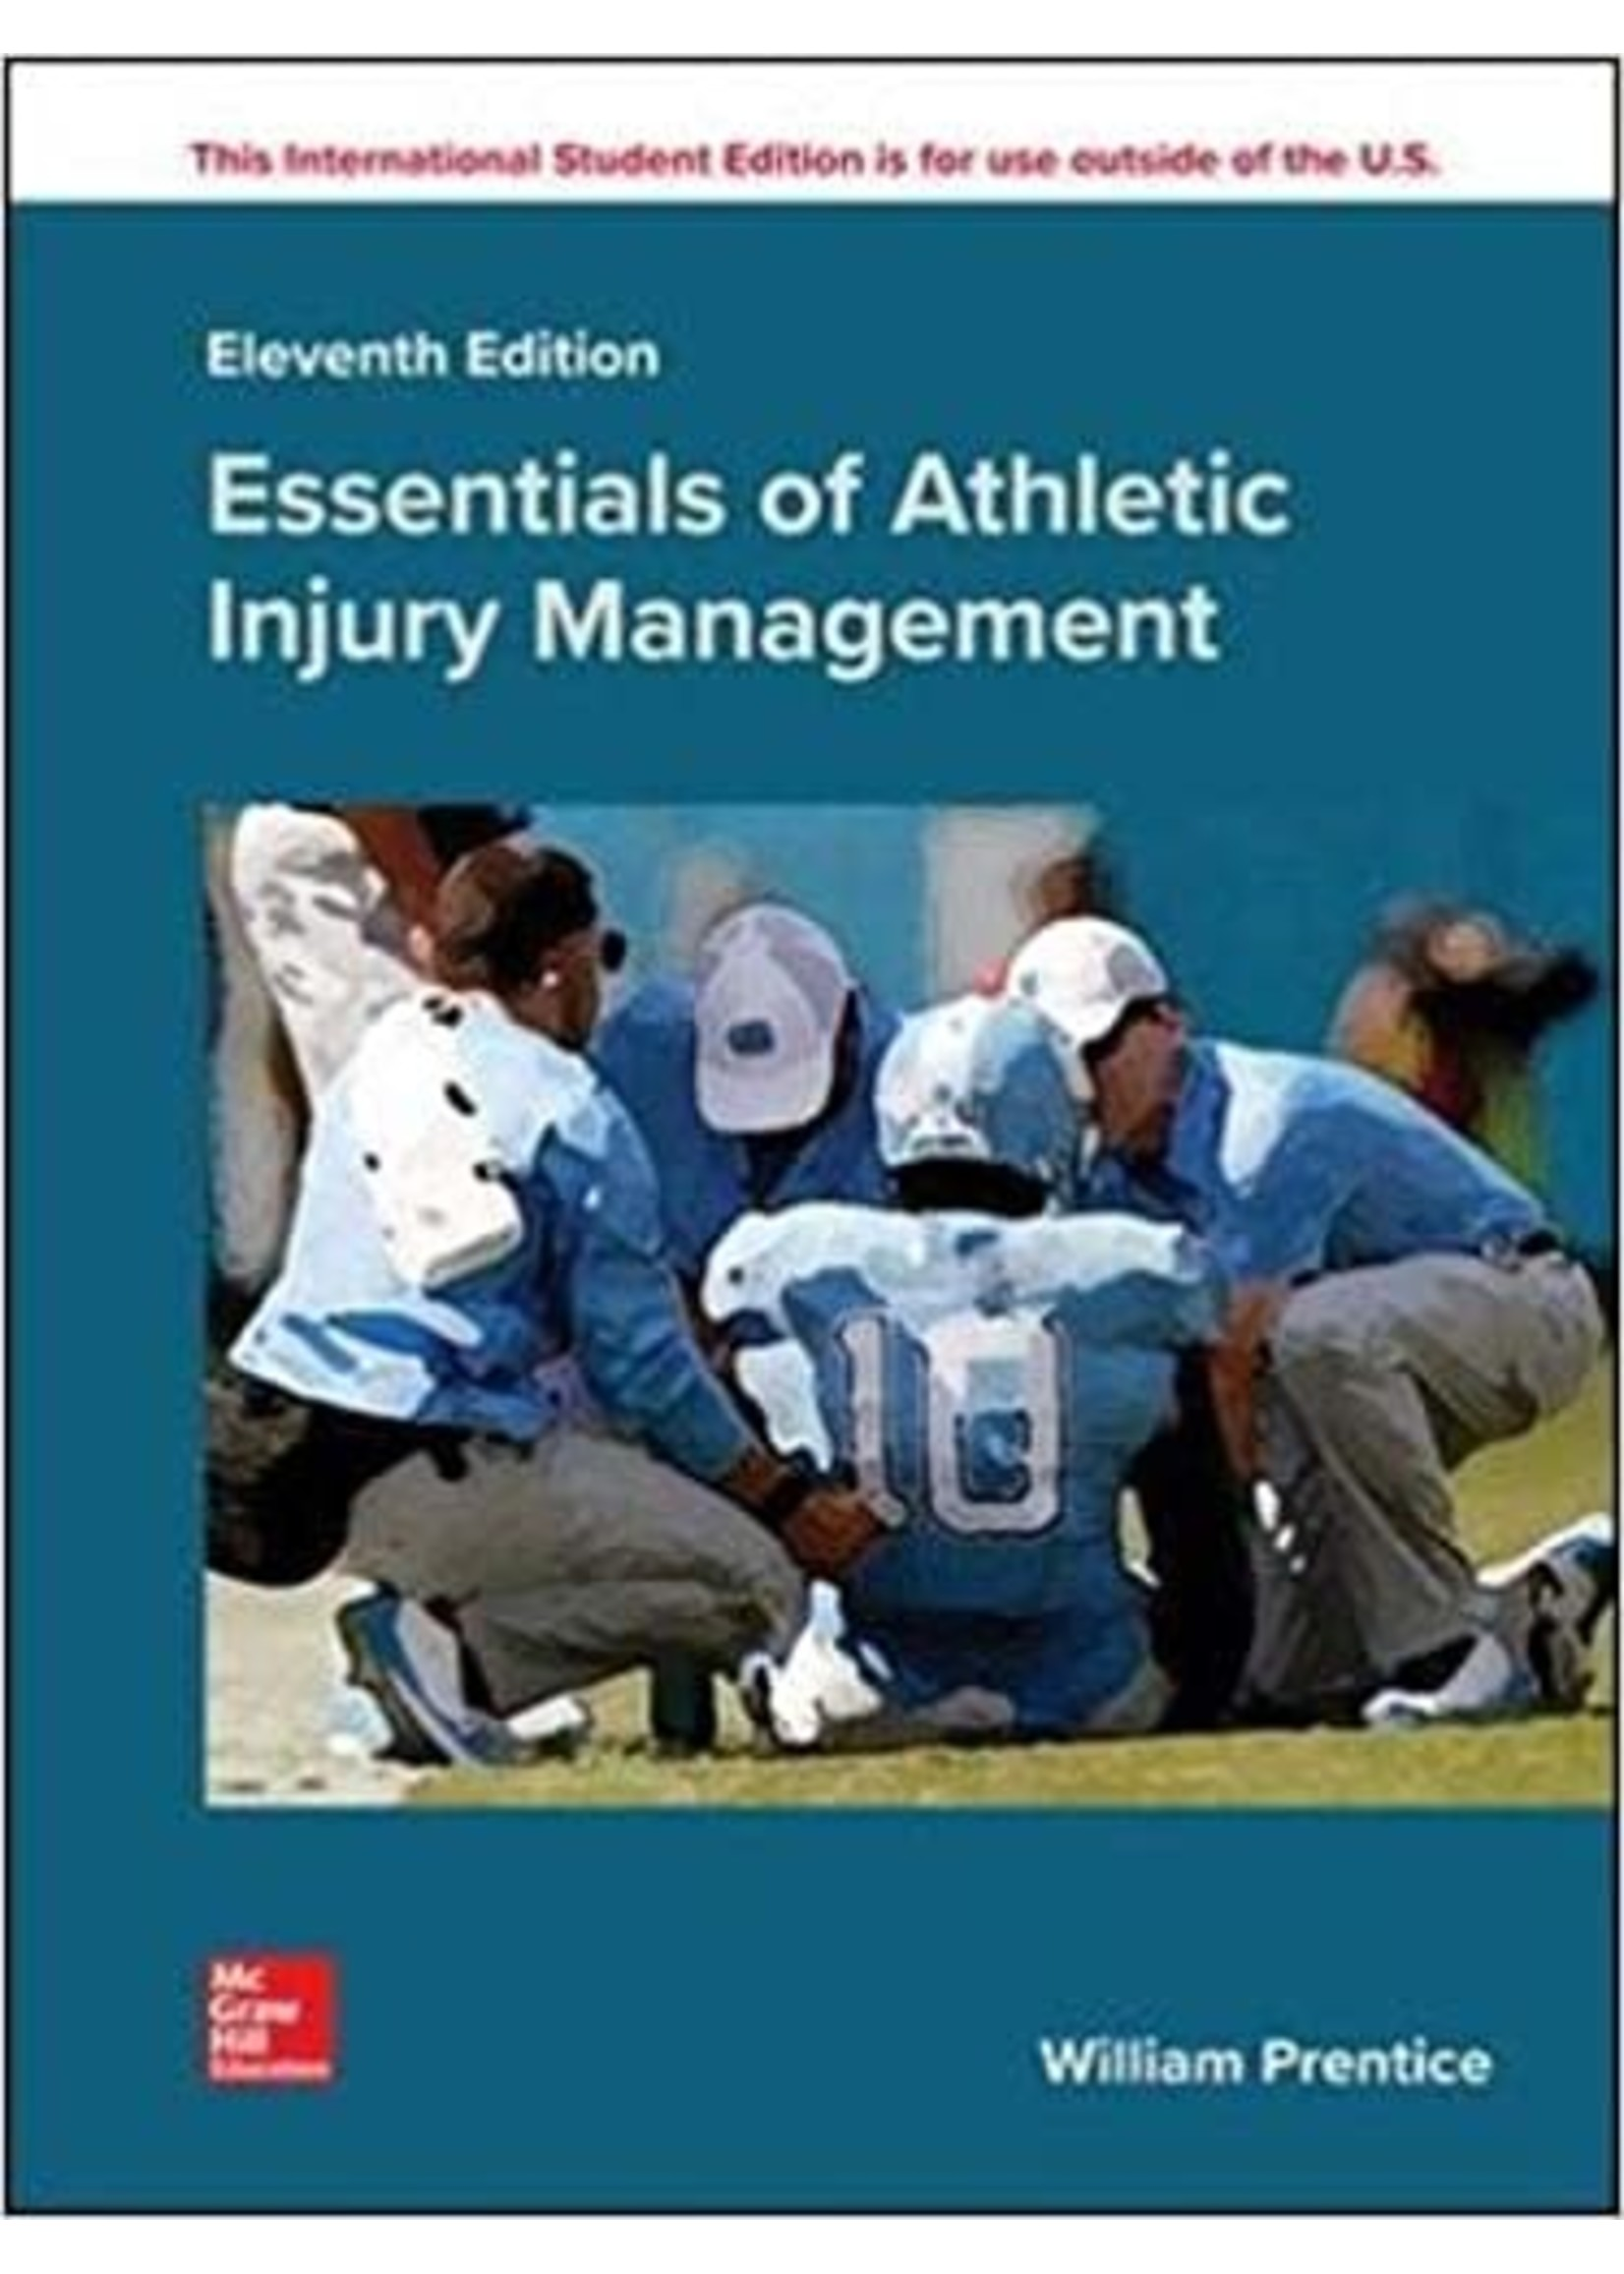 EXNS200 ESSENTIALS OF ATHLETIC INJURY MGMT